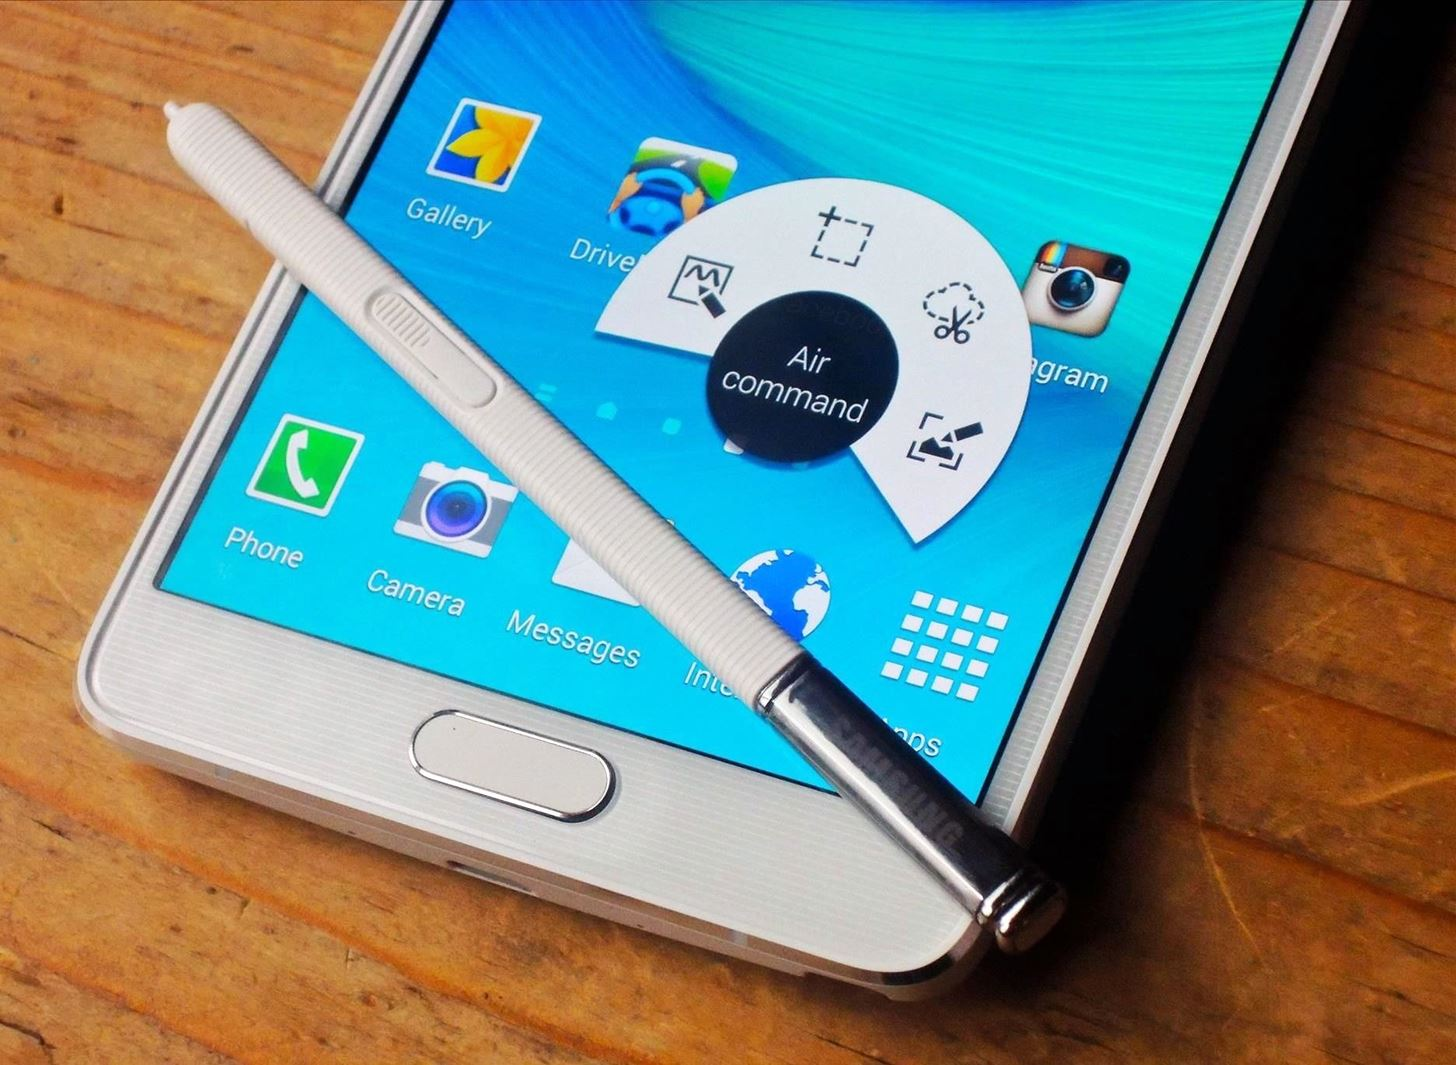 7 Features That Make the Samsung Galaxy Note 4 Great